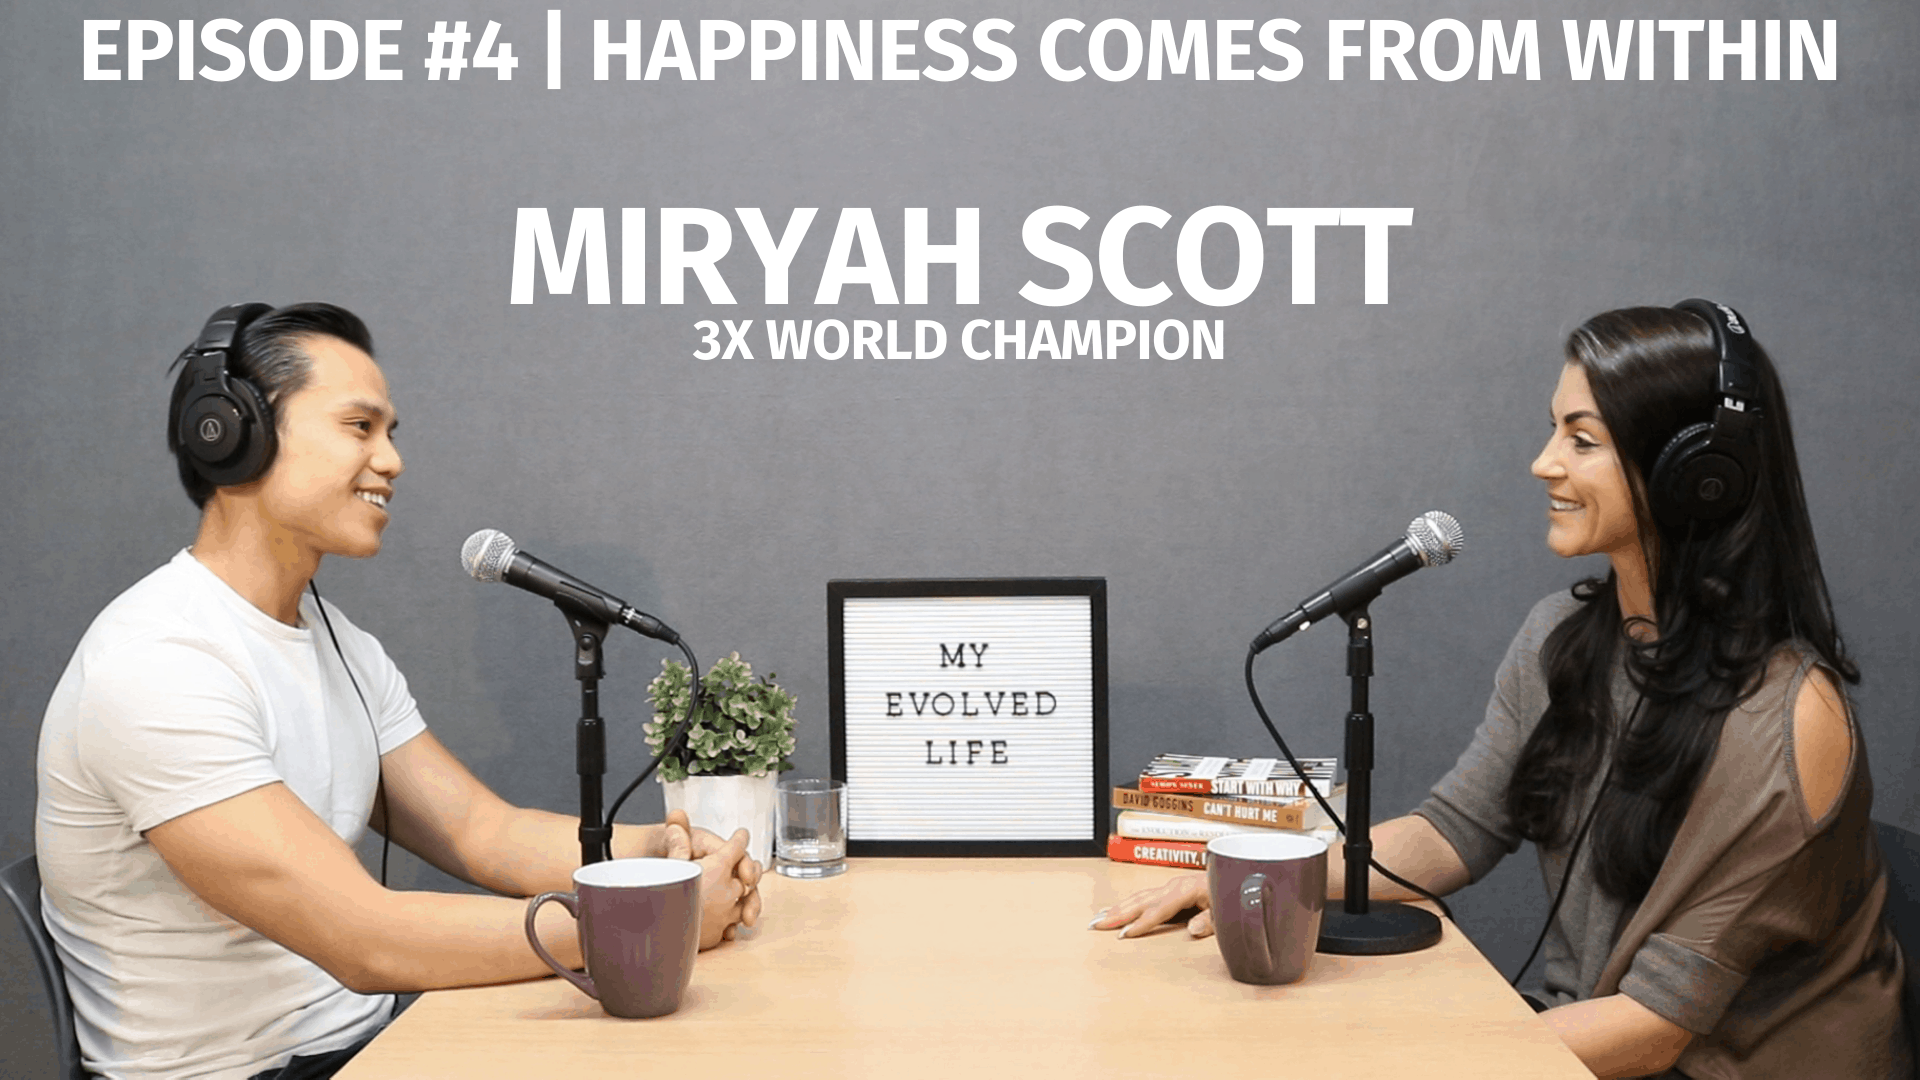 My Evolved Life  Episode #4 - Miryah Scott - Happiness Comes From Within